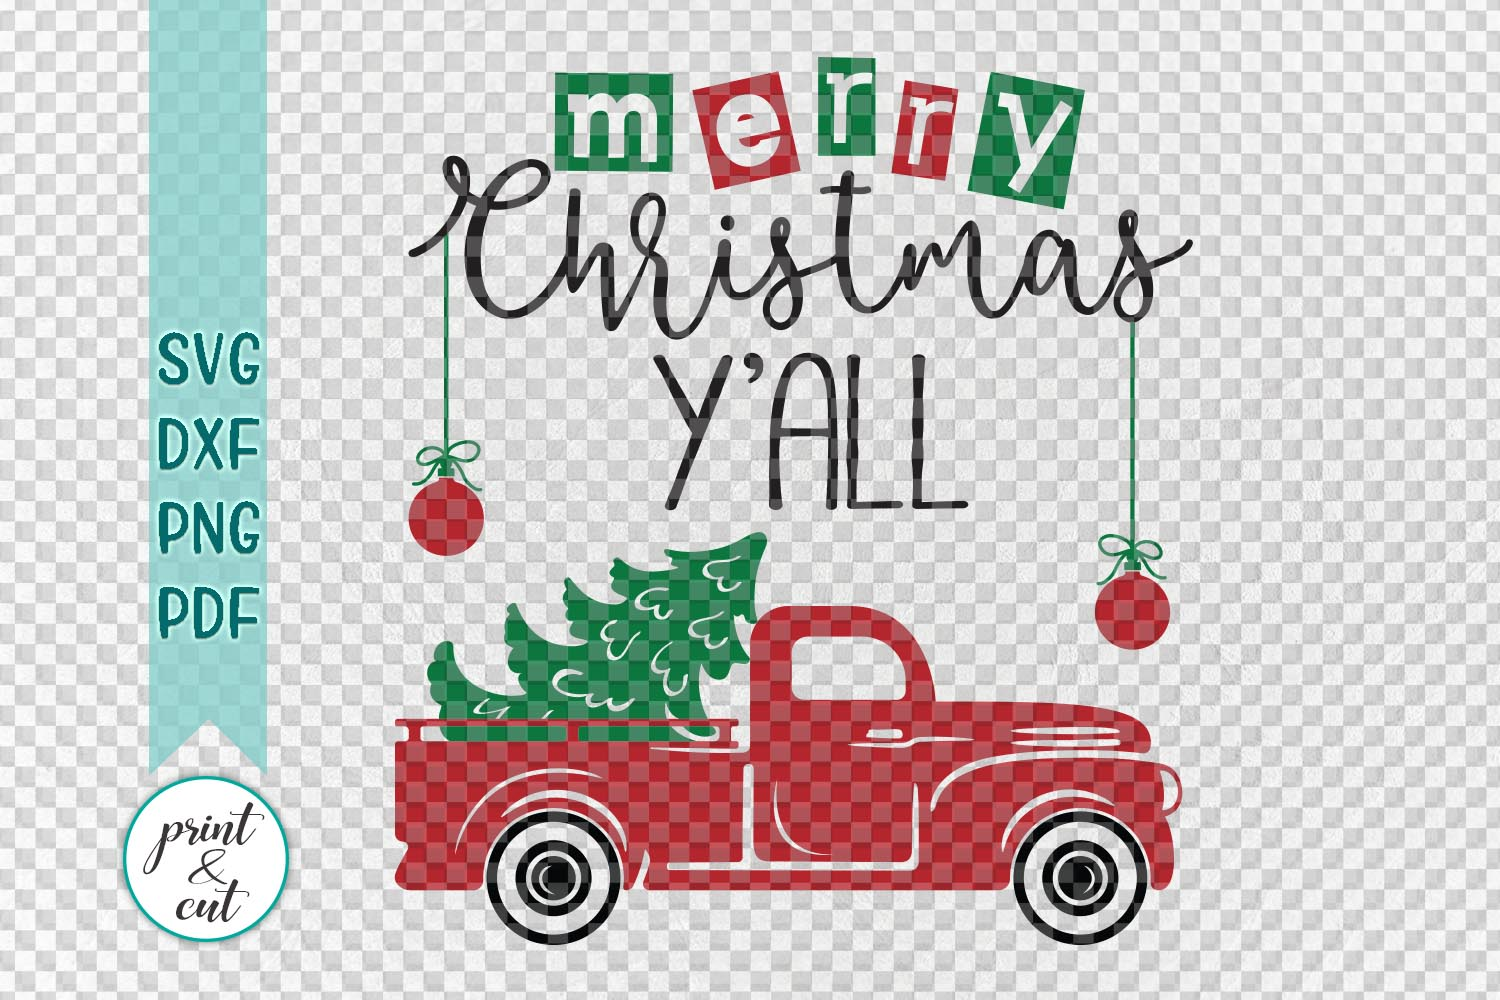 Merry Christmas Y'all Truck svg dxf files for vinyl HTV cut example image 2